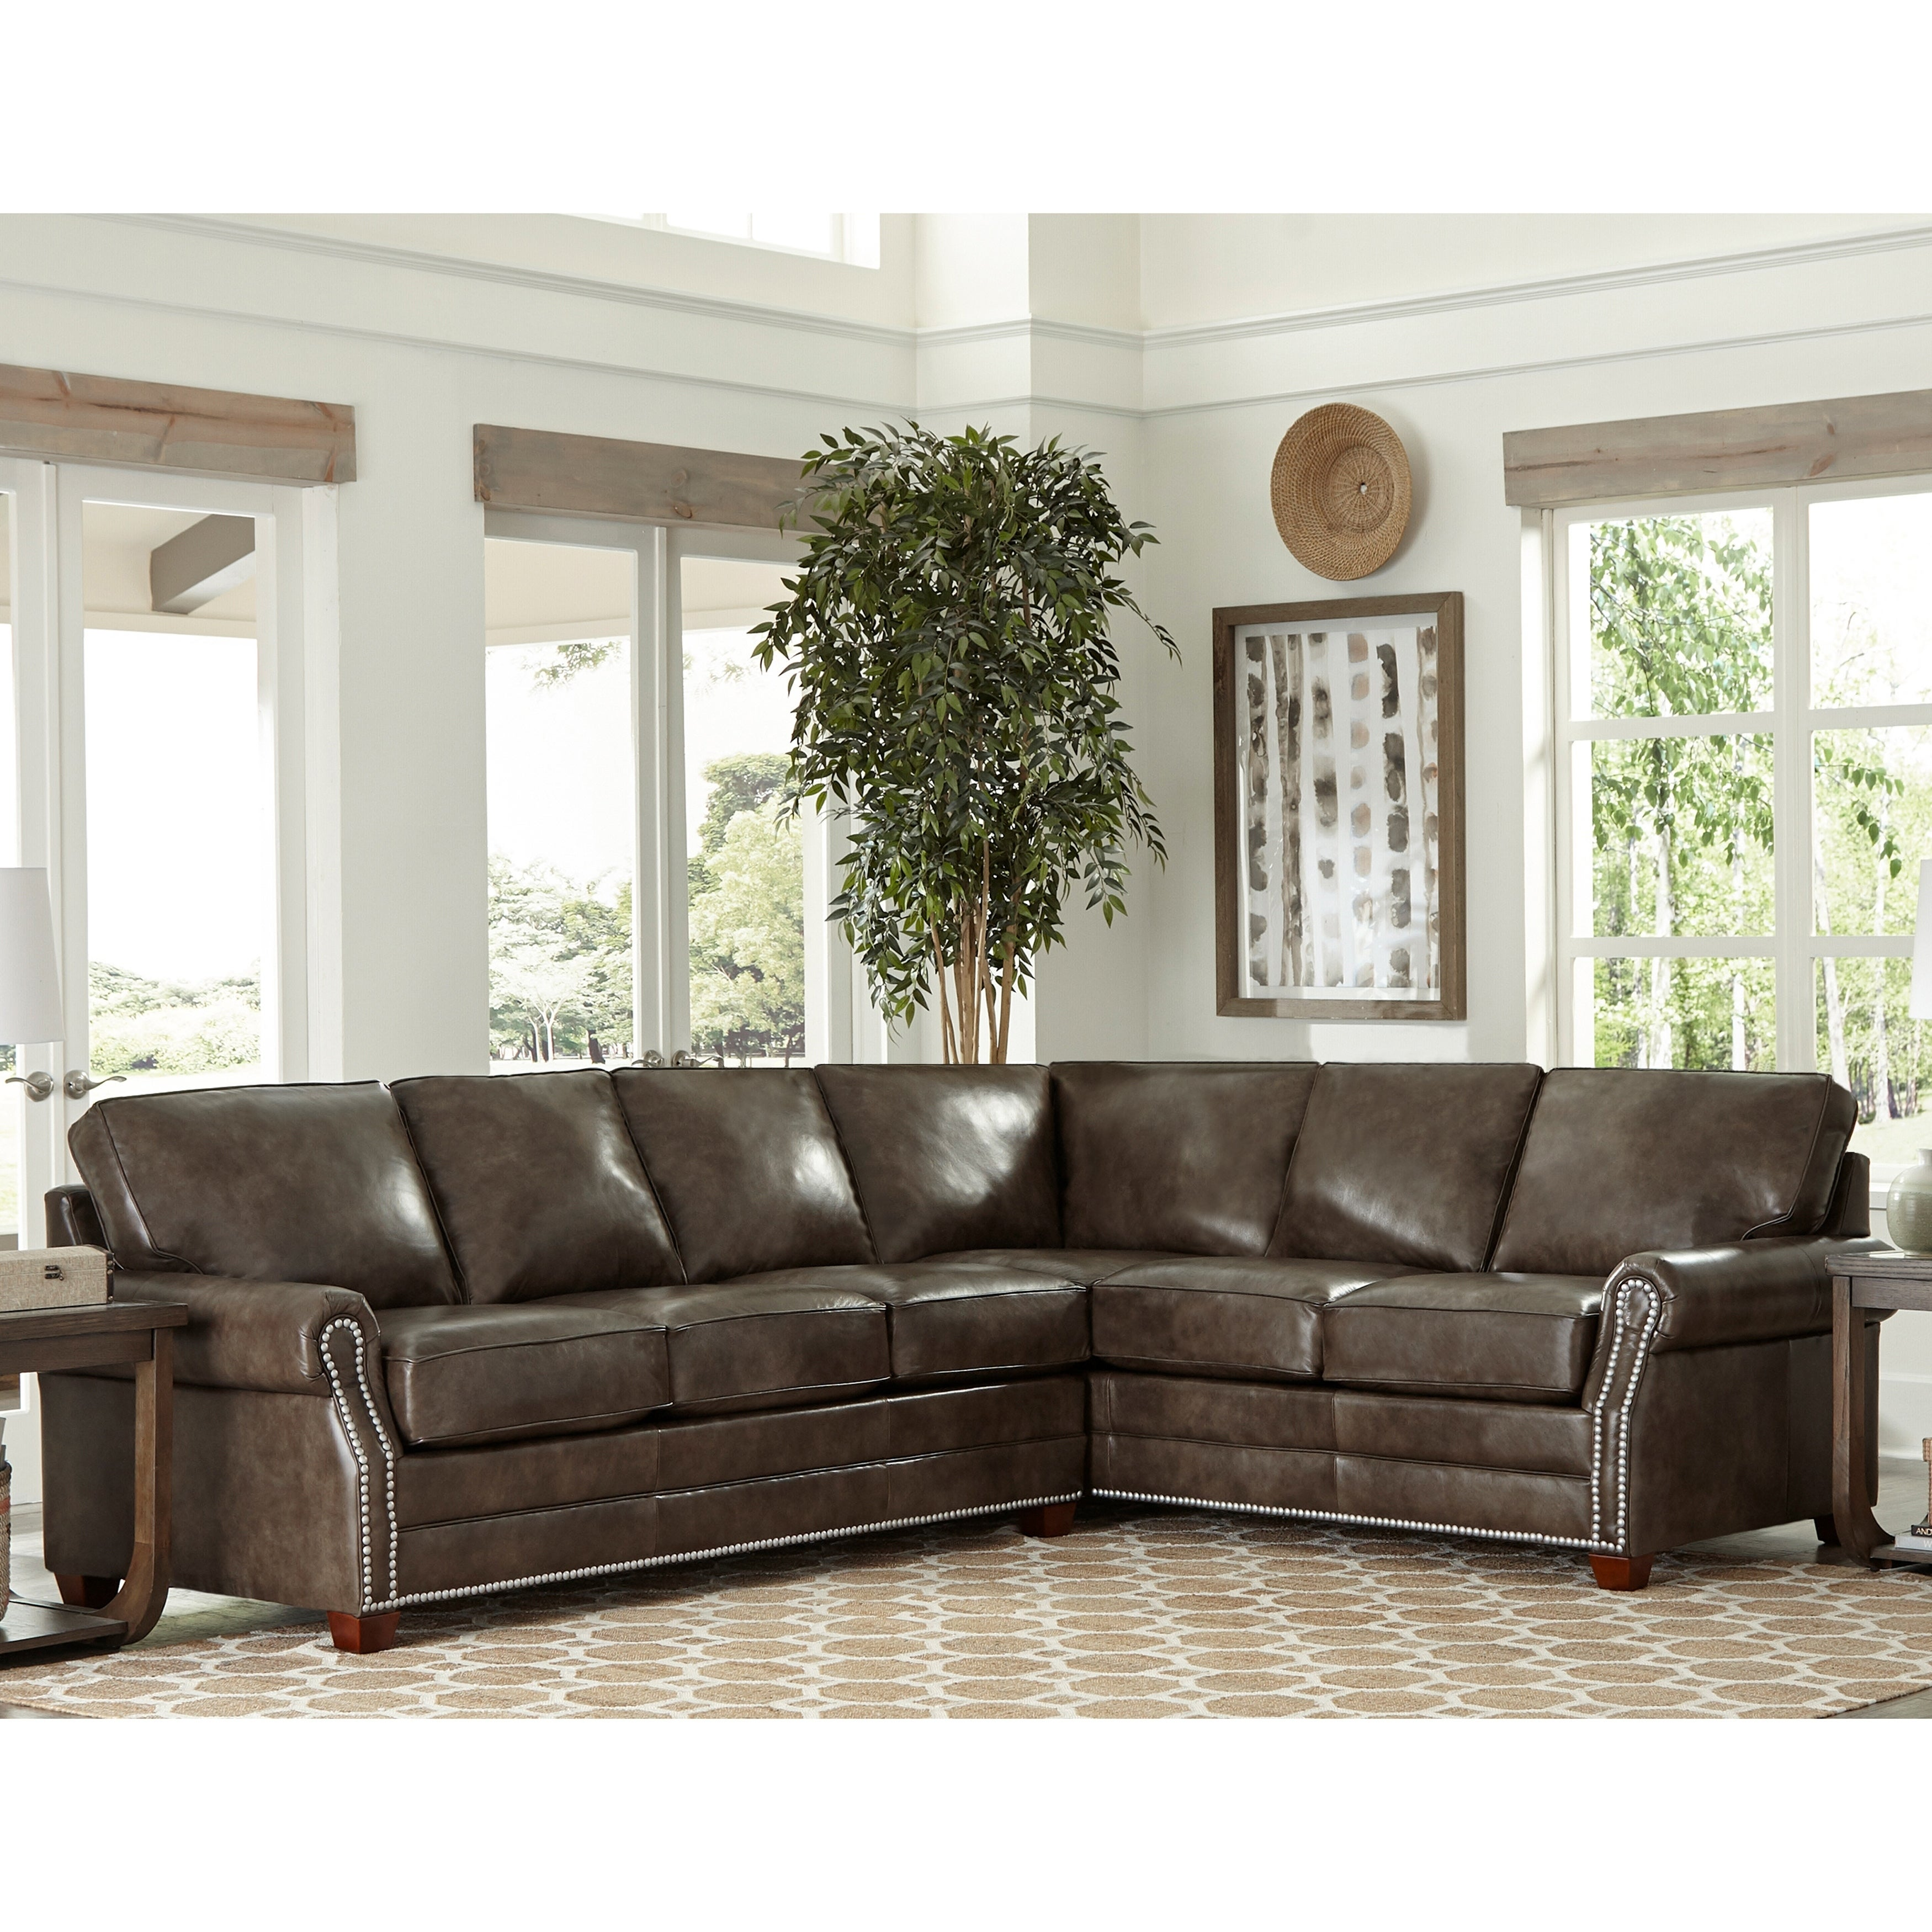 Top Grain Leather Sectional Sofa Bed